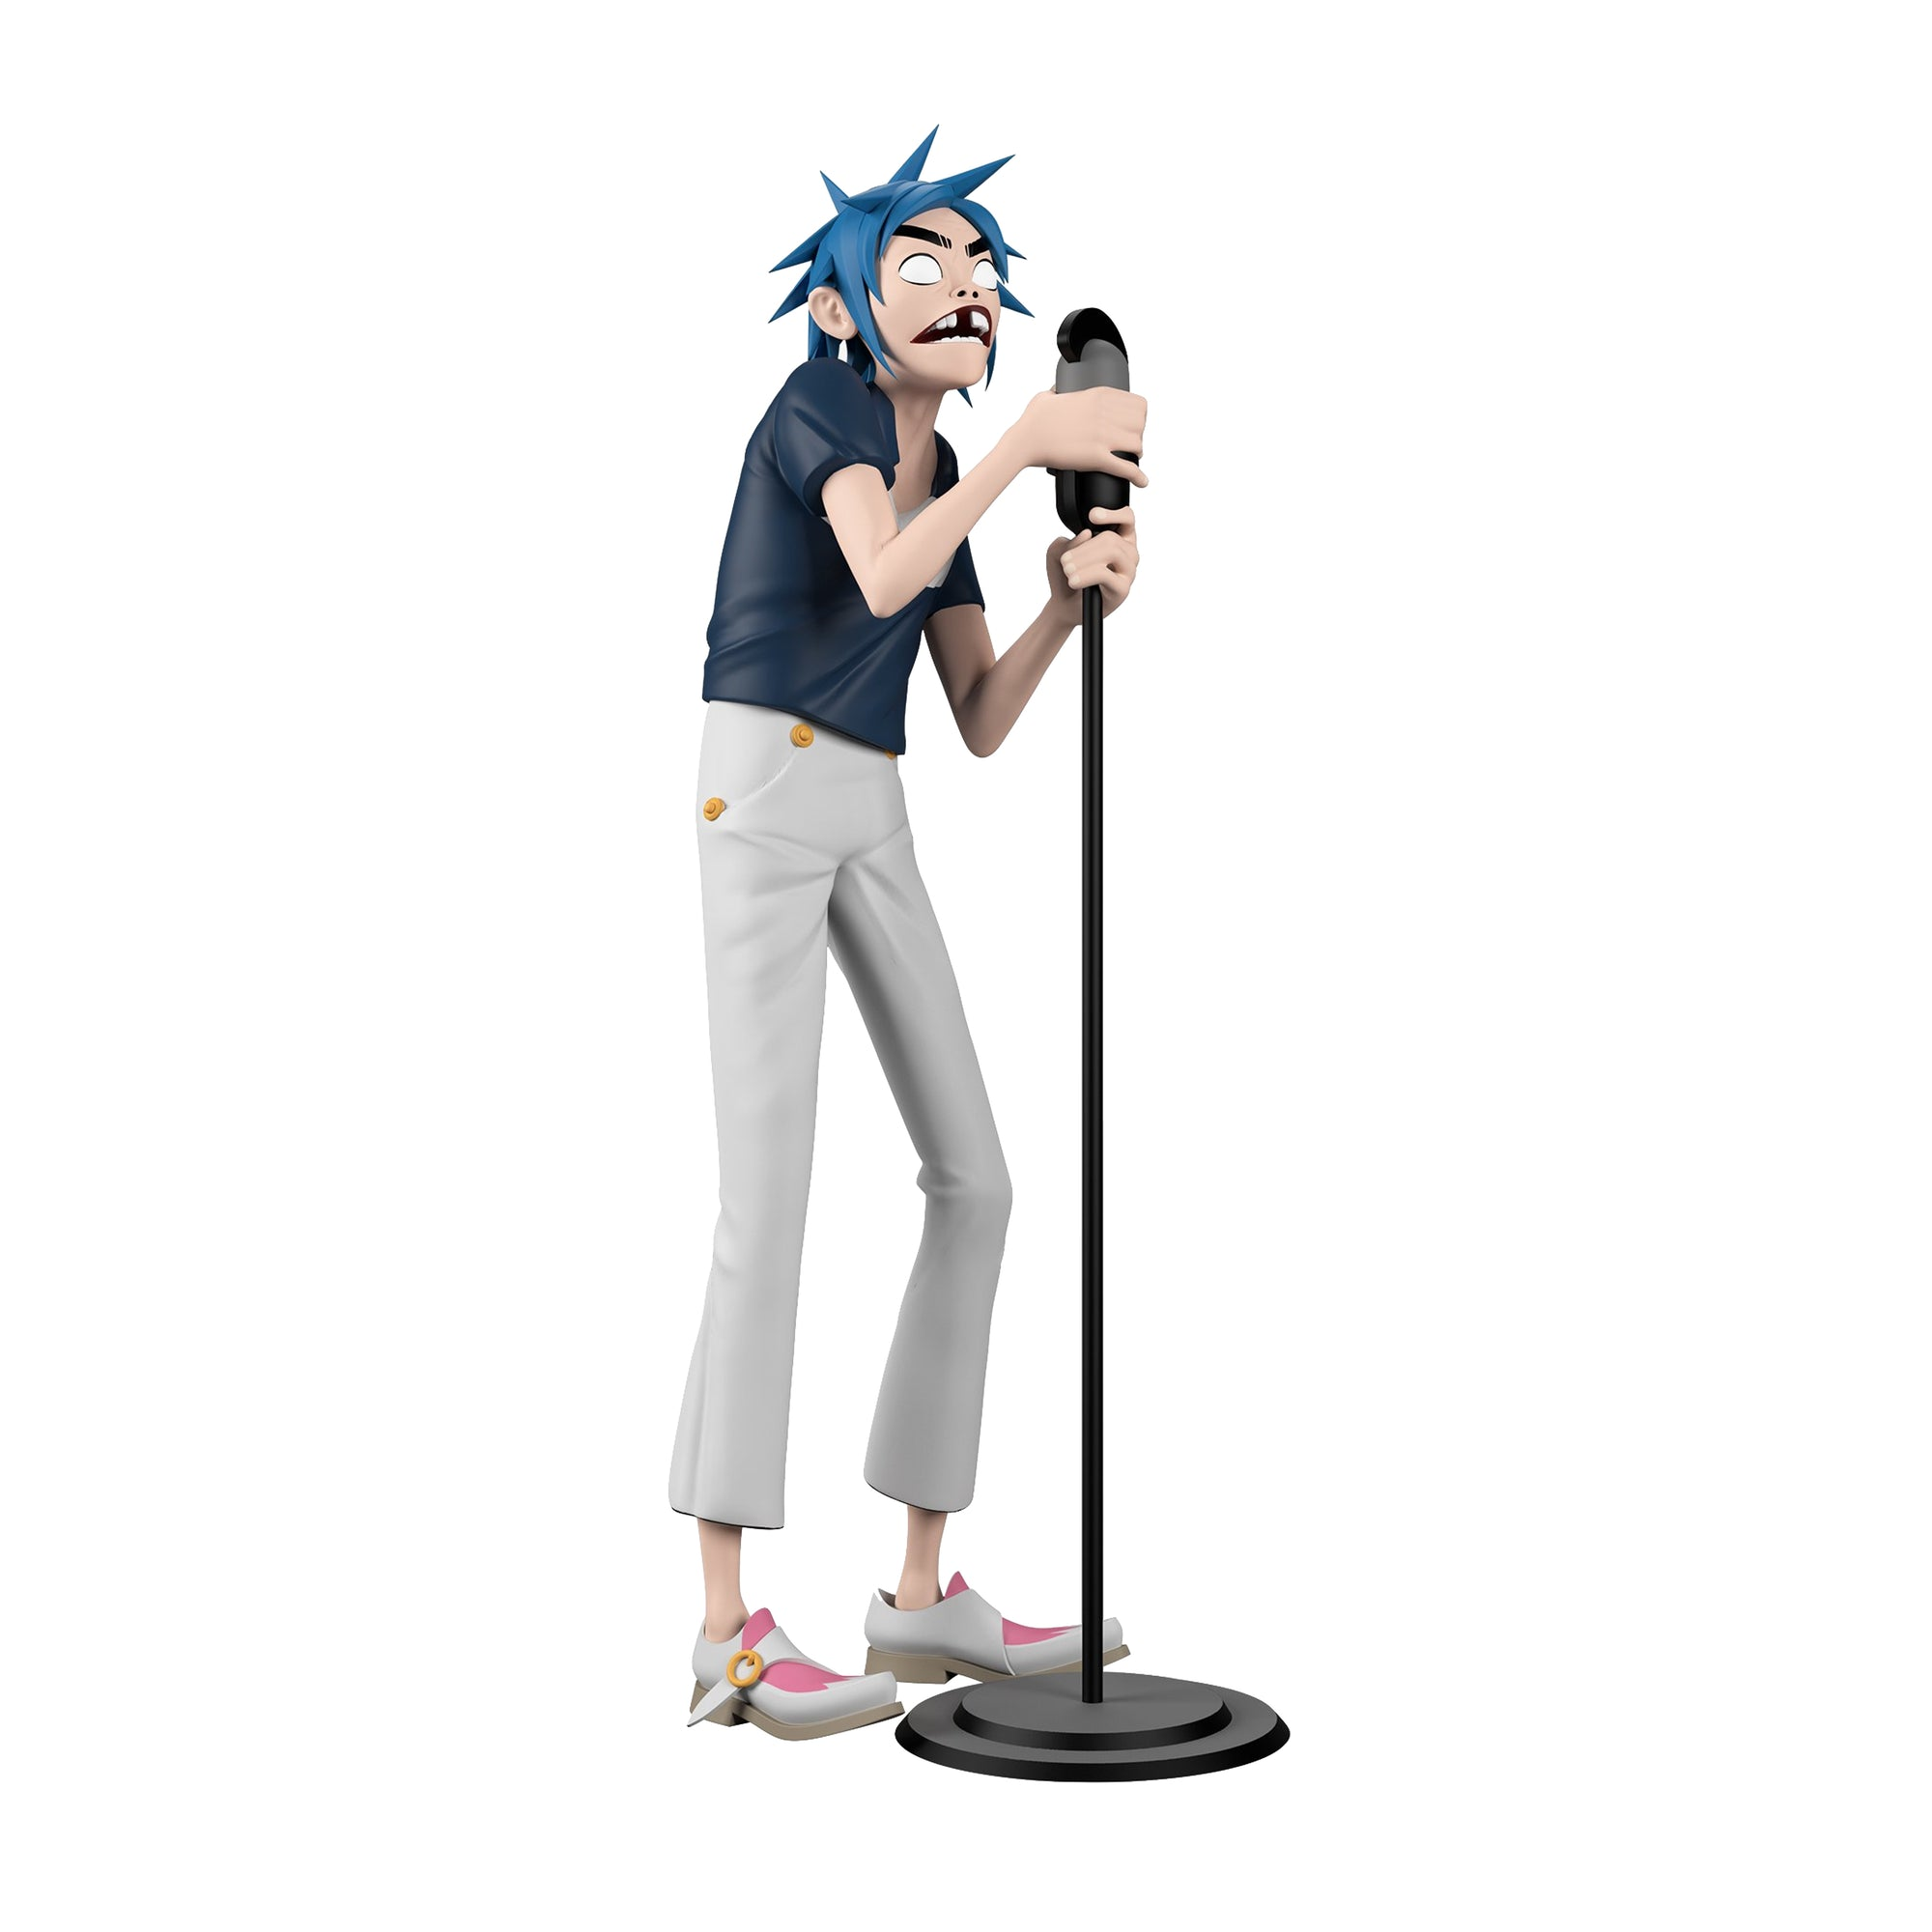 "SUPERPLASTIC X GORILLAZ 2D 12"" Designer Toy"